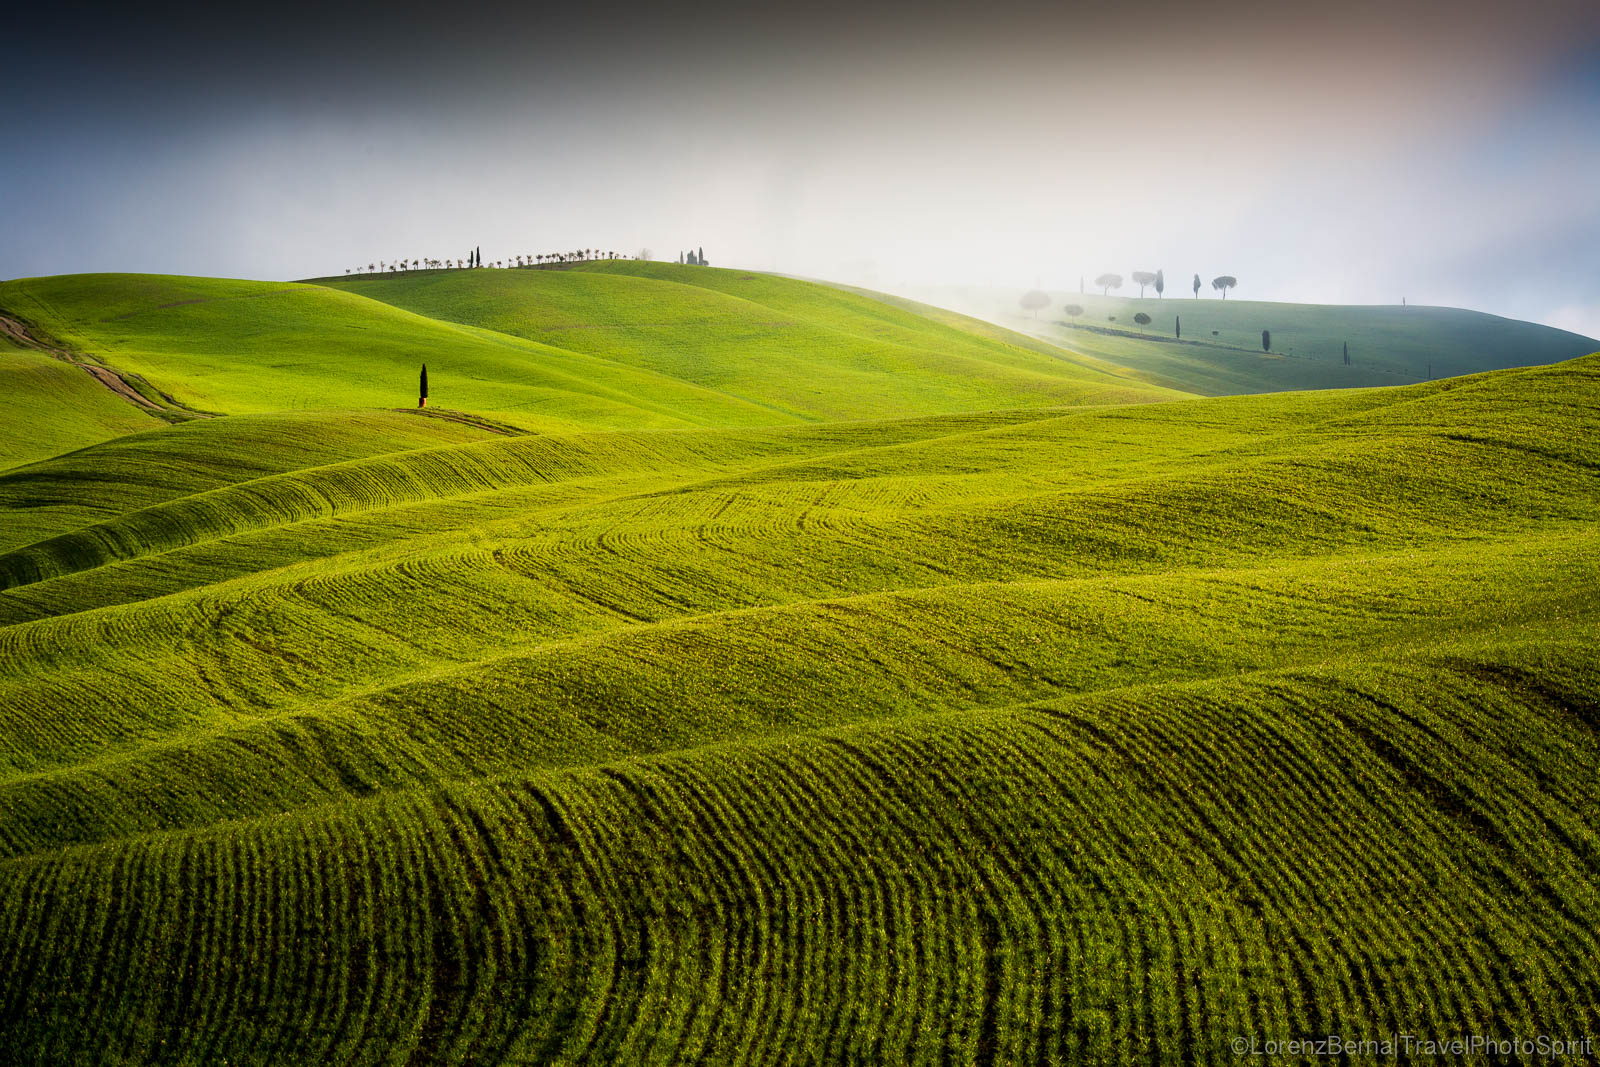 Waving valleys of the Val D'Orcia, Tuscany, Italy